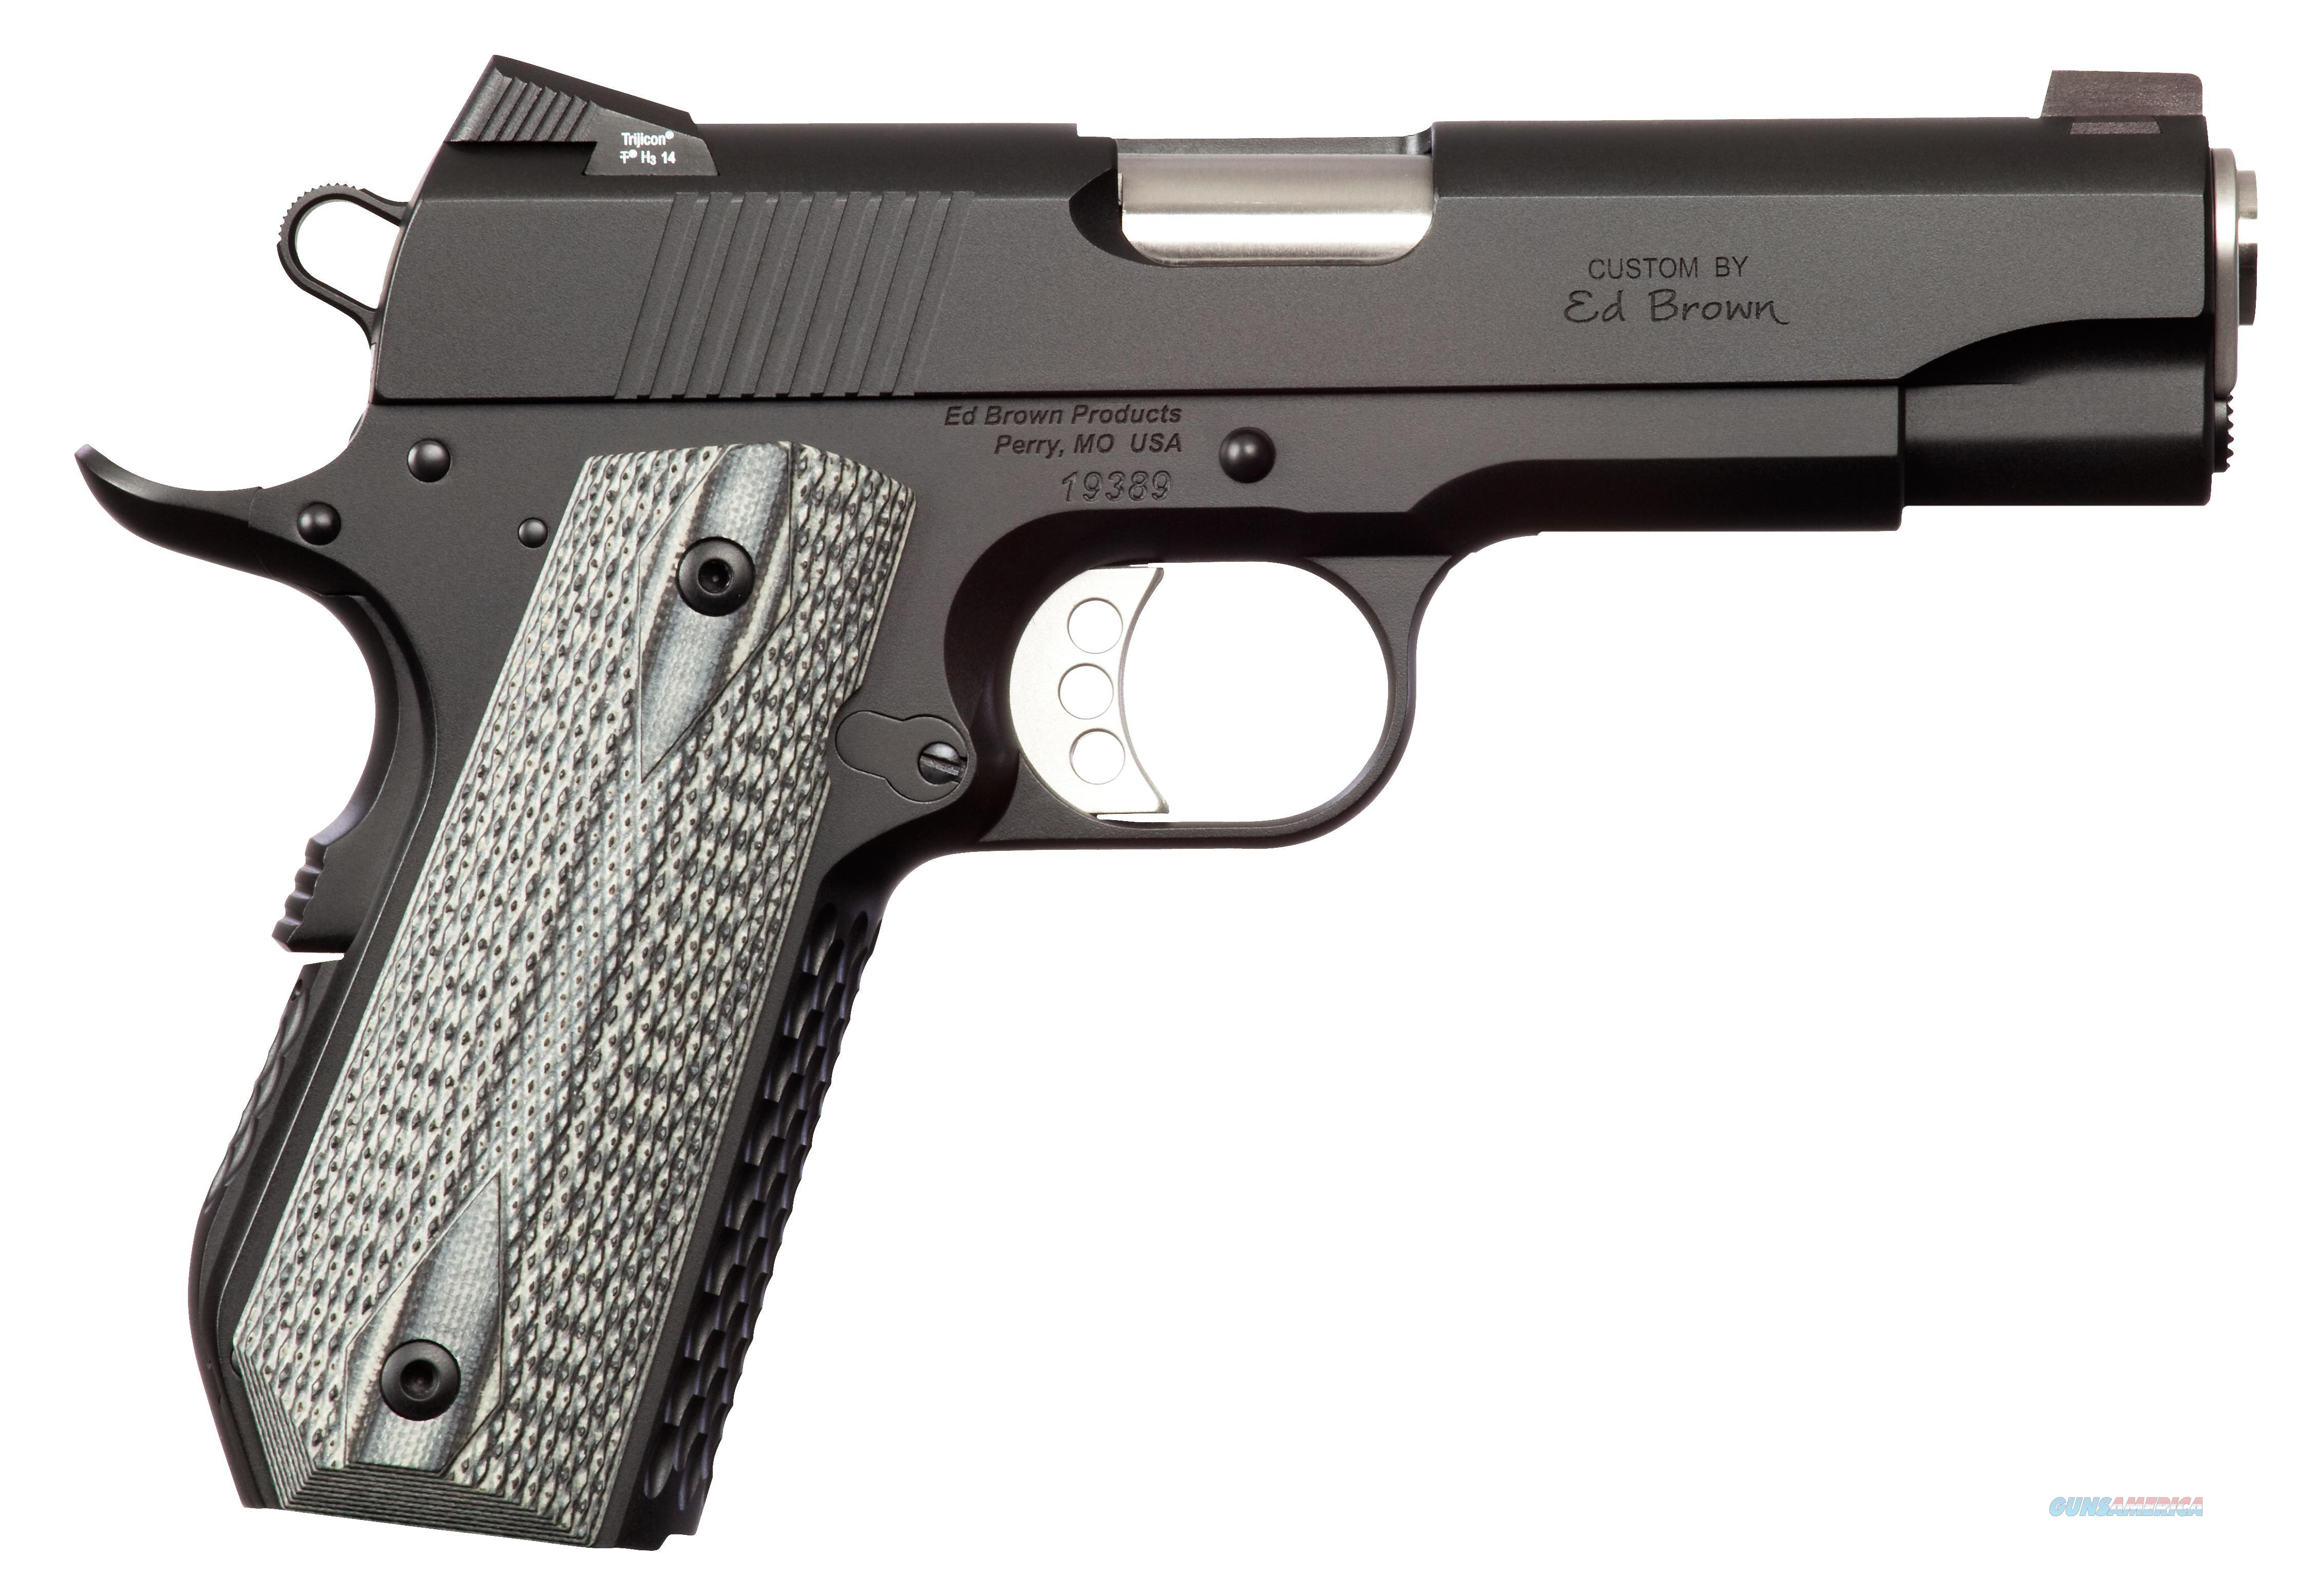 "ED BROWN AC-SS-G4 ALPHA CARRY GEN4 SAO 45 ACP 4.3"" 7+1 POLY GRIP BLACK ACSSG4  Guns > Pistols > Ed Brown Pistols"